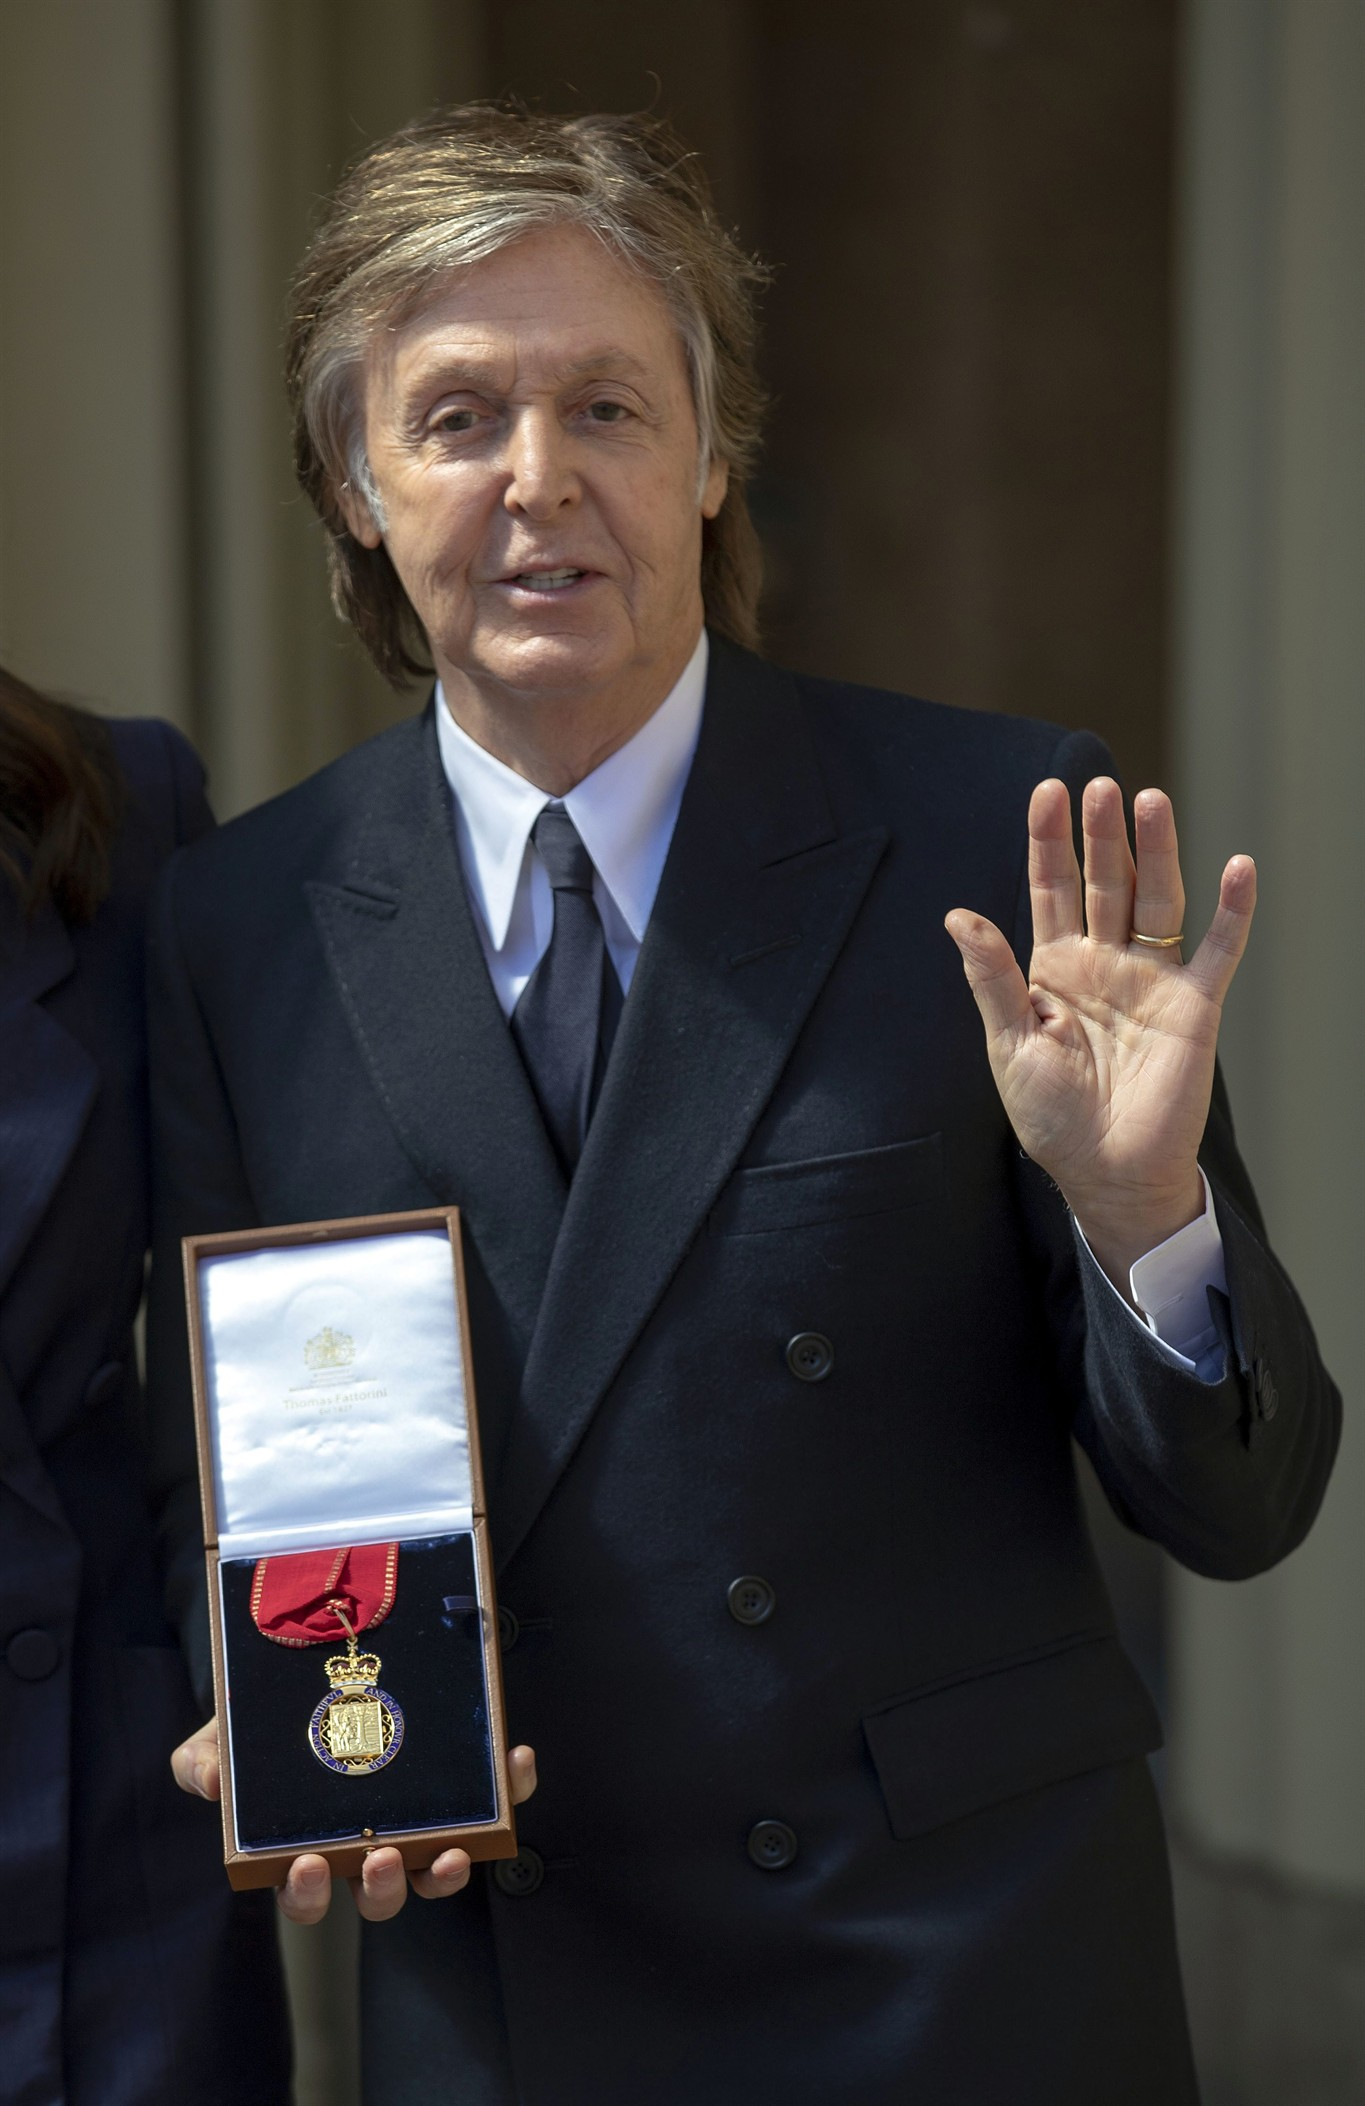 Paul McCartney Pose For The Media Following An Investiture Ceremony At Buckingham Palace London Friday May 4 2018 Where He Was Made A Companion Of